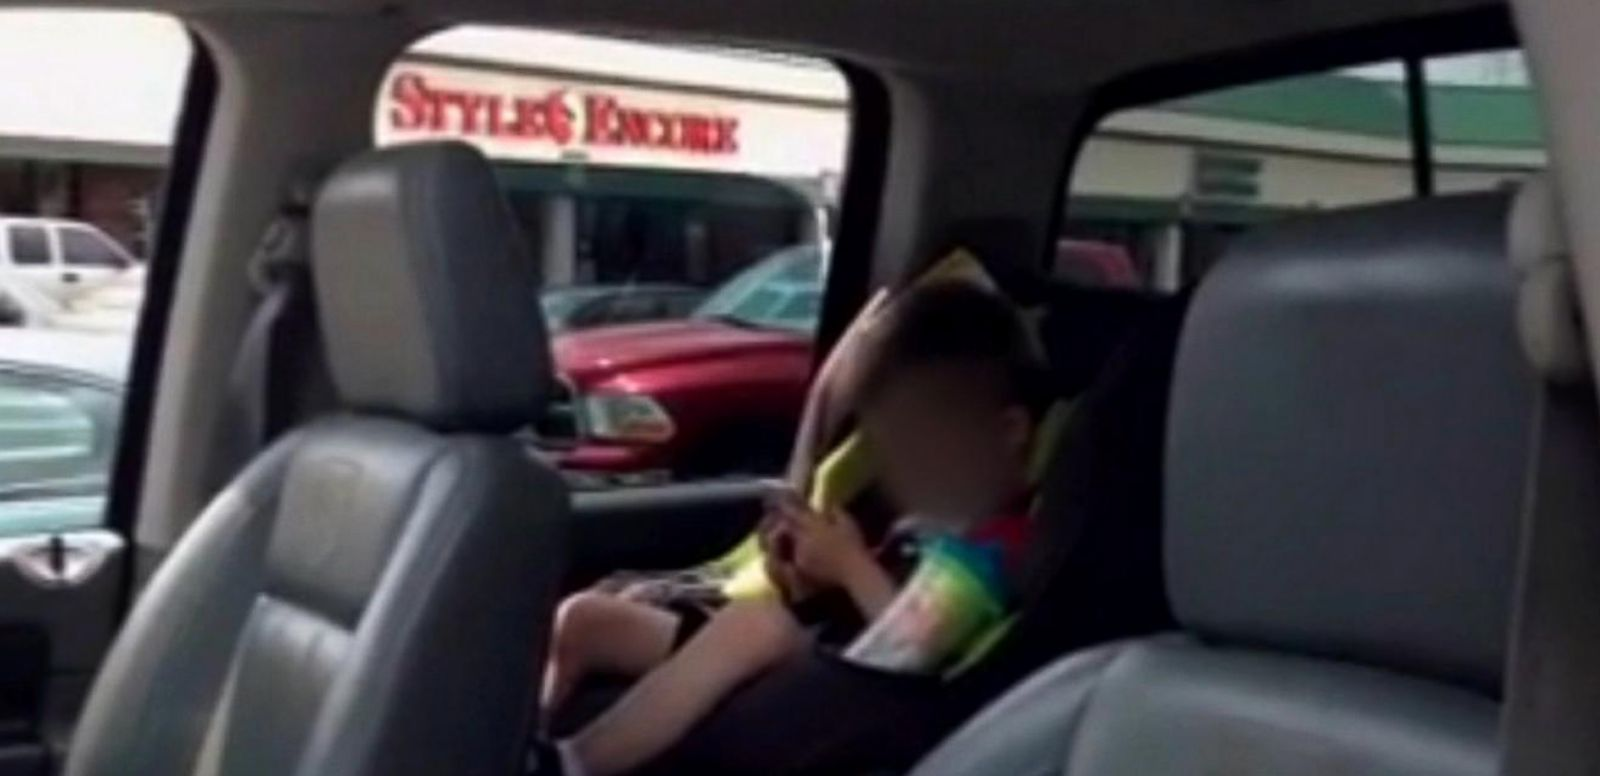 VIDEO: Kentucky Father Investigated After Allegedly Leaving Child in Idling Truck